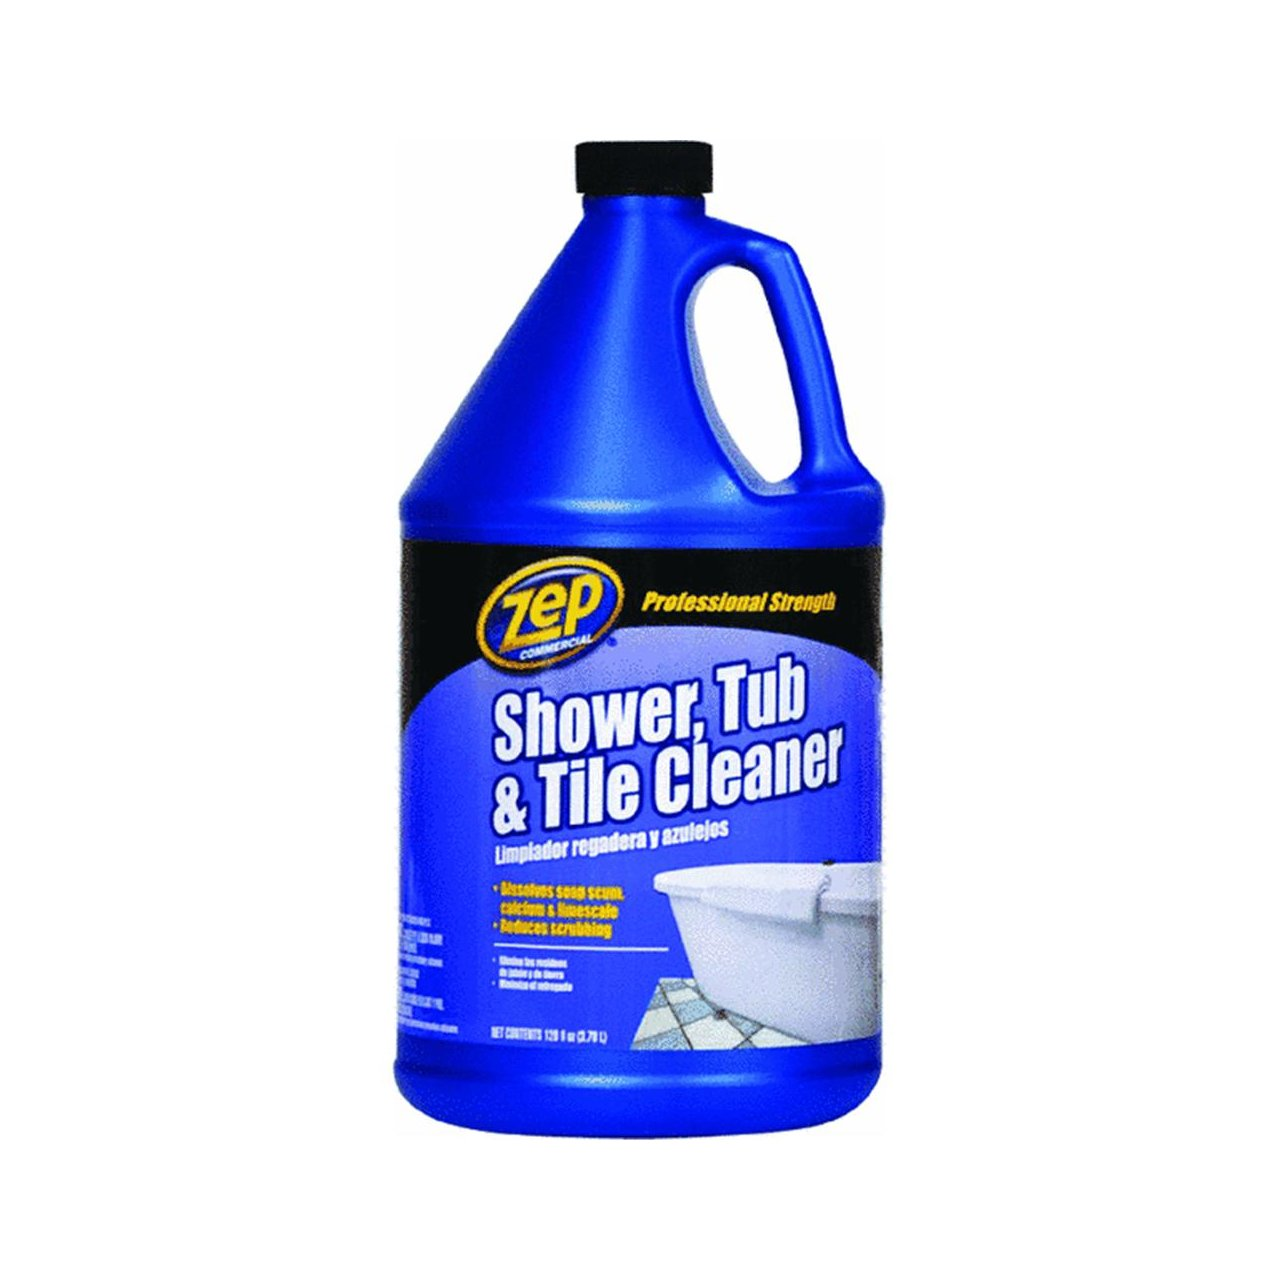 Zep ZUSTT128 Shower, Tub and Tile Cleaner 128 Ounces - Zep Shower ...